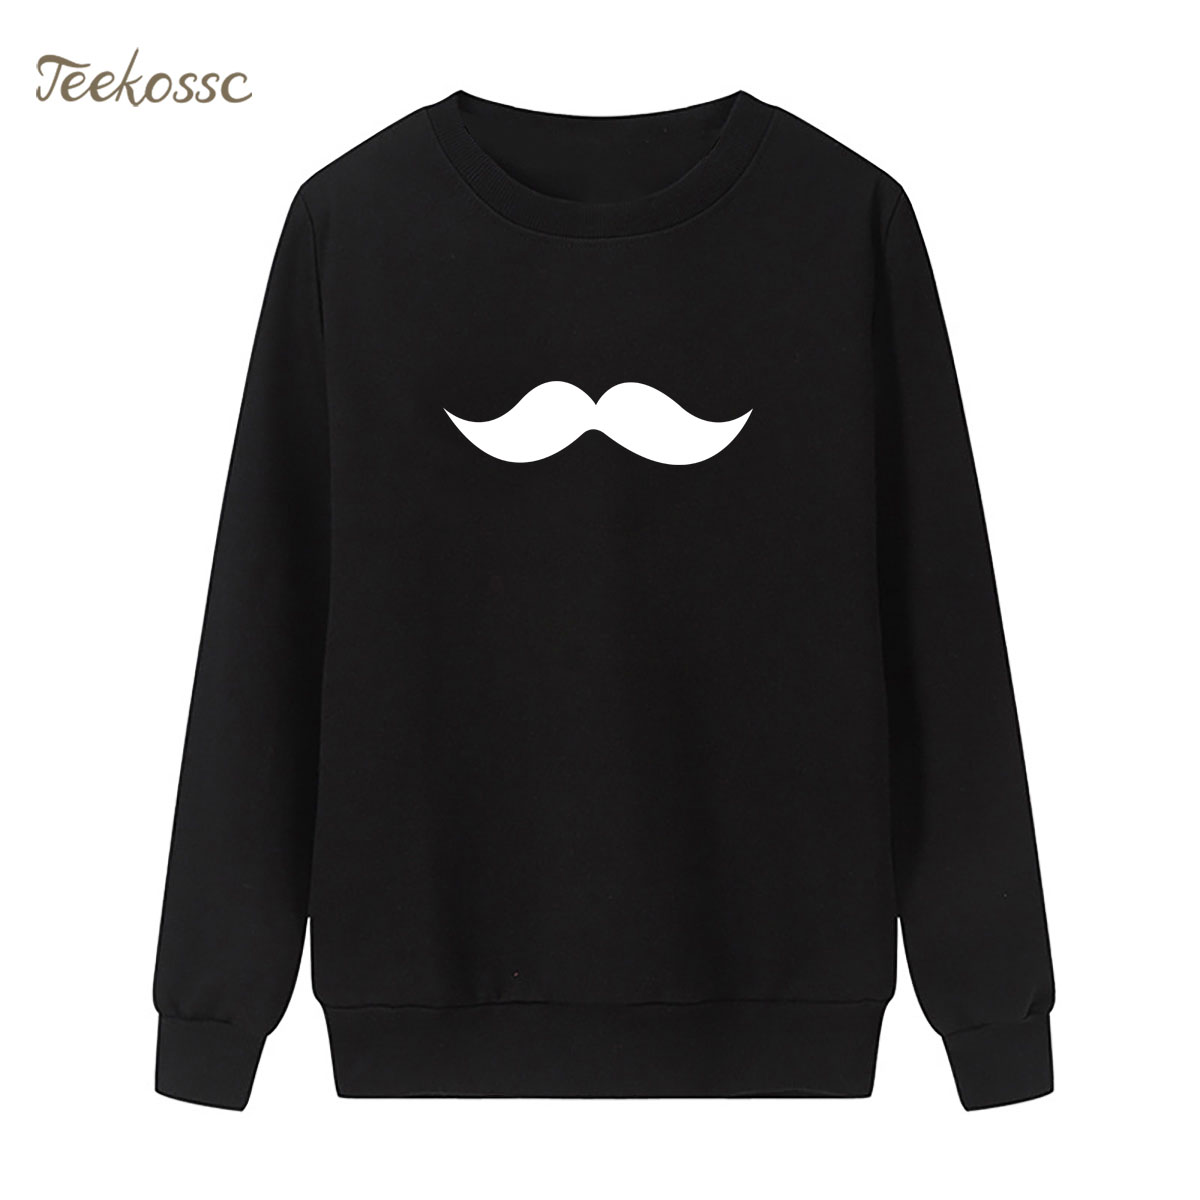 MOUSTACHE Sweatshirt Cute Hoodie 2018 New Brand Winter Autumn Women Lasdies Pullover Loose Fleece Funny Black White Streetwear